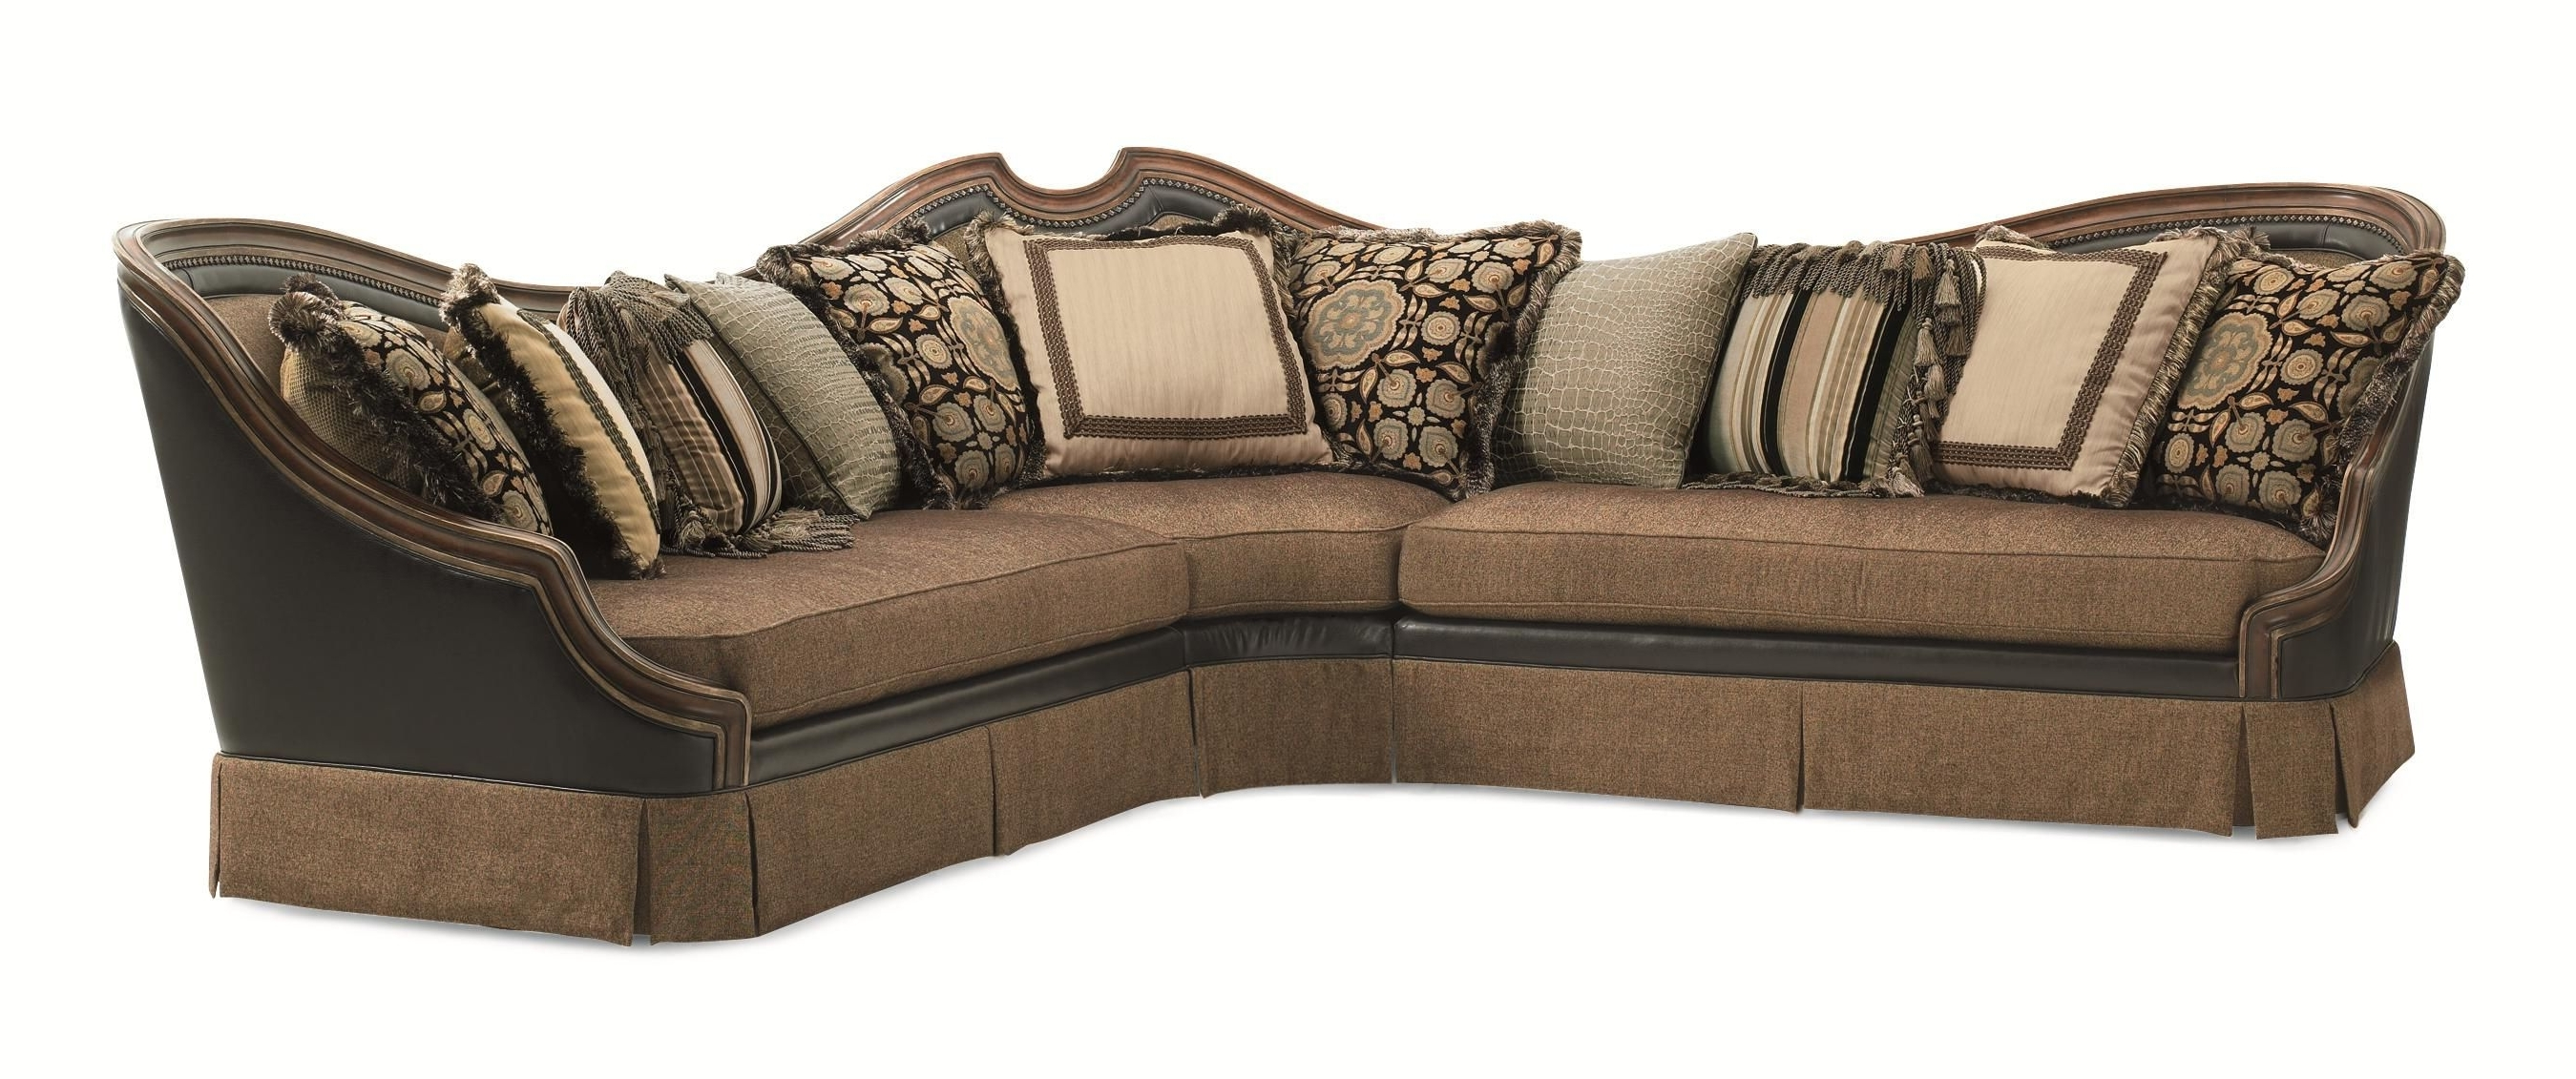 Wyeth Sofa Sectional Groupschnadig (View 3 of 15)